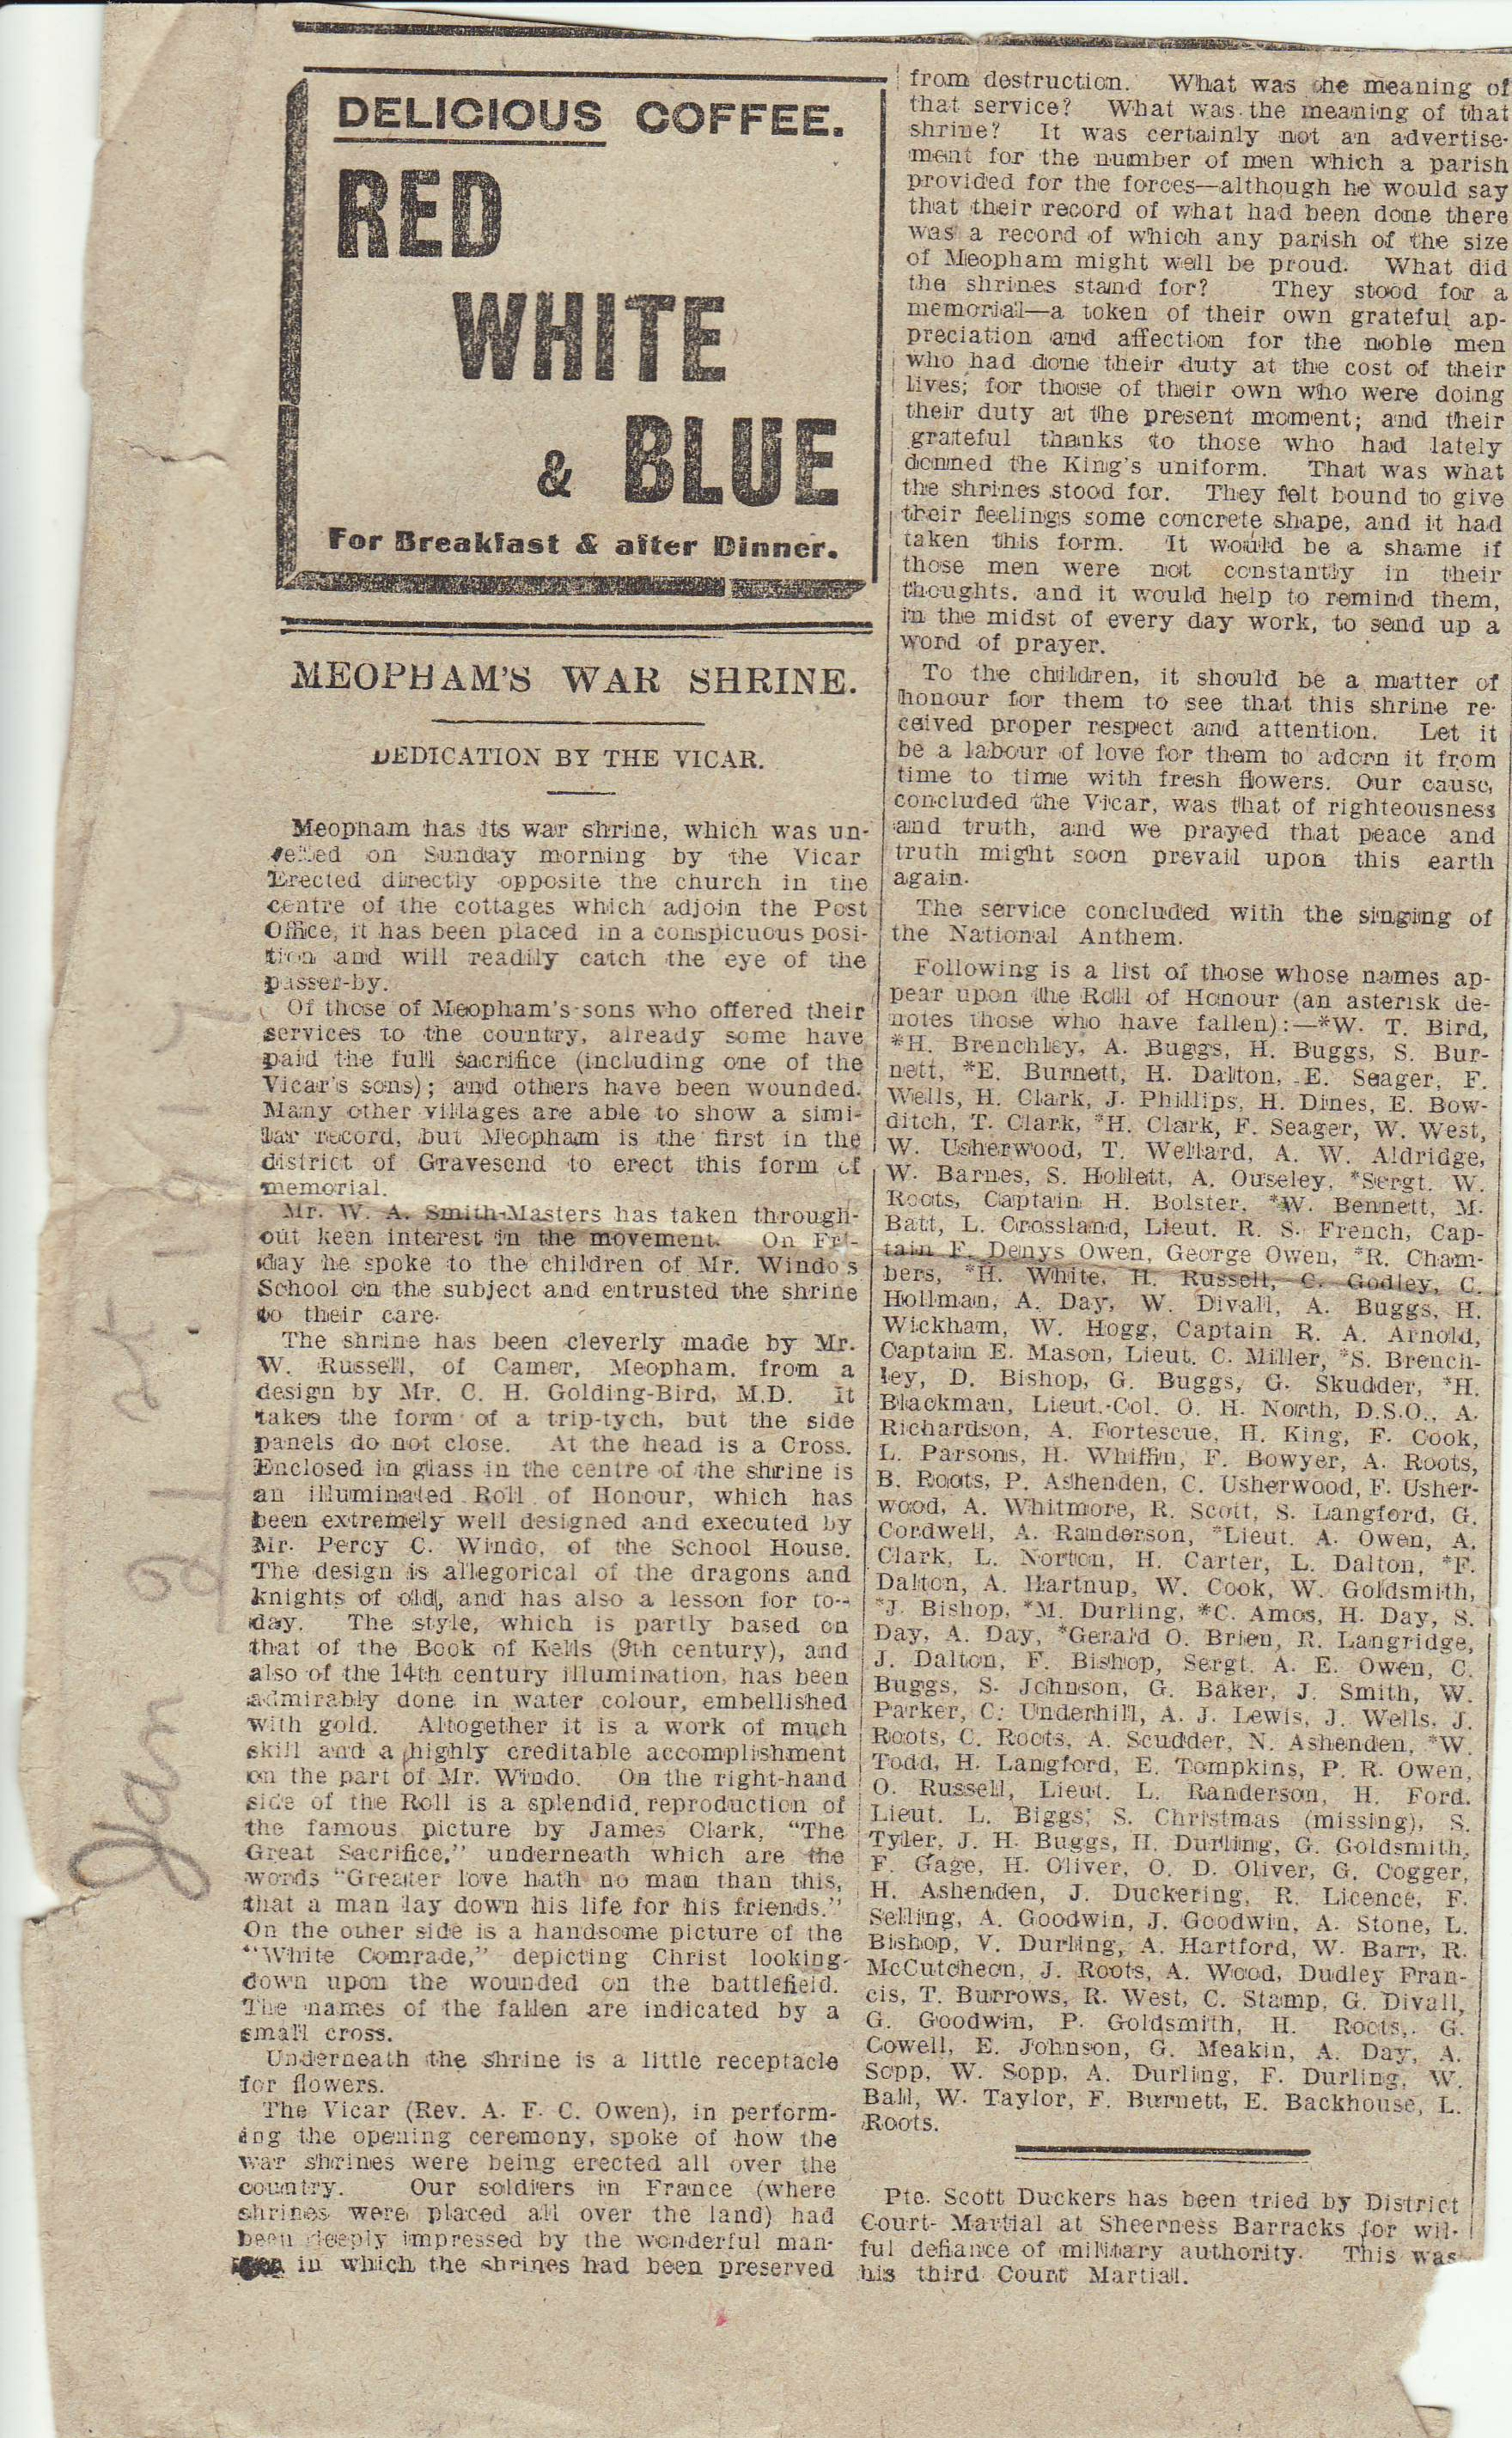 Newspaper article about a war shrine